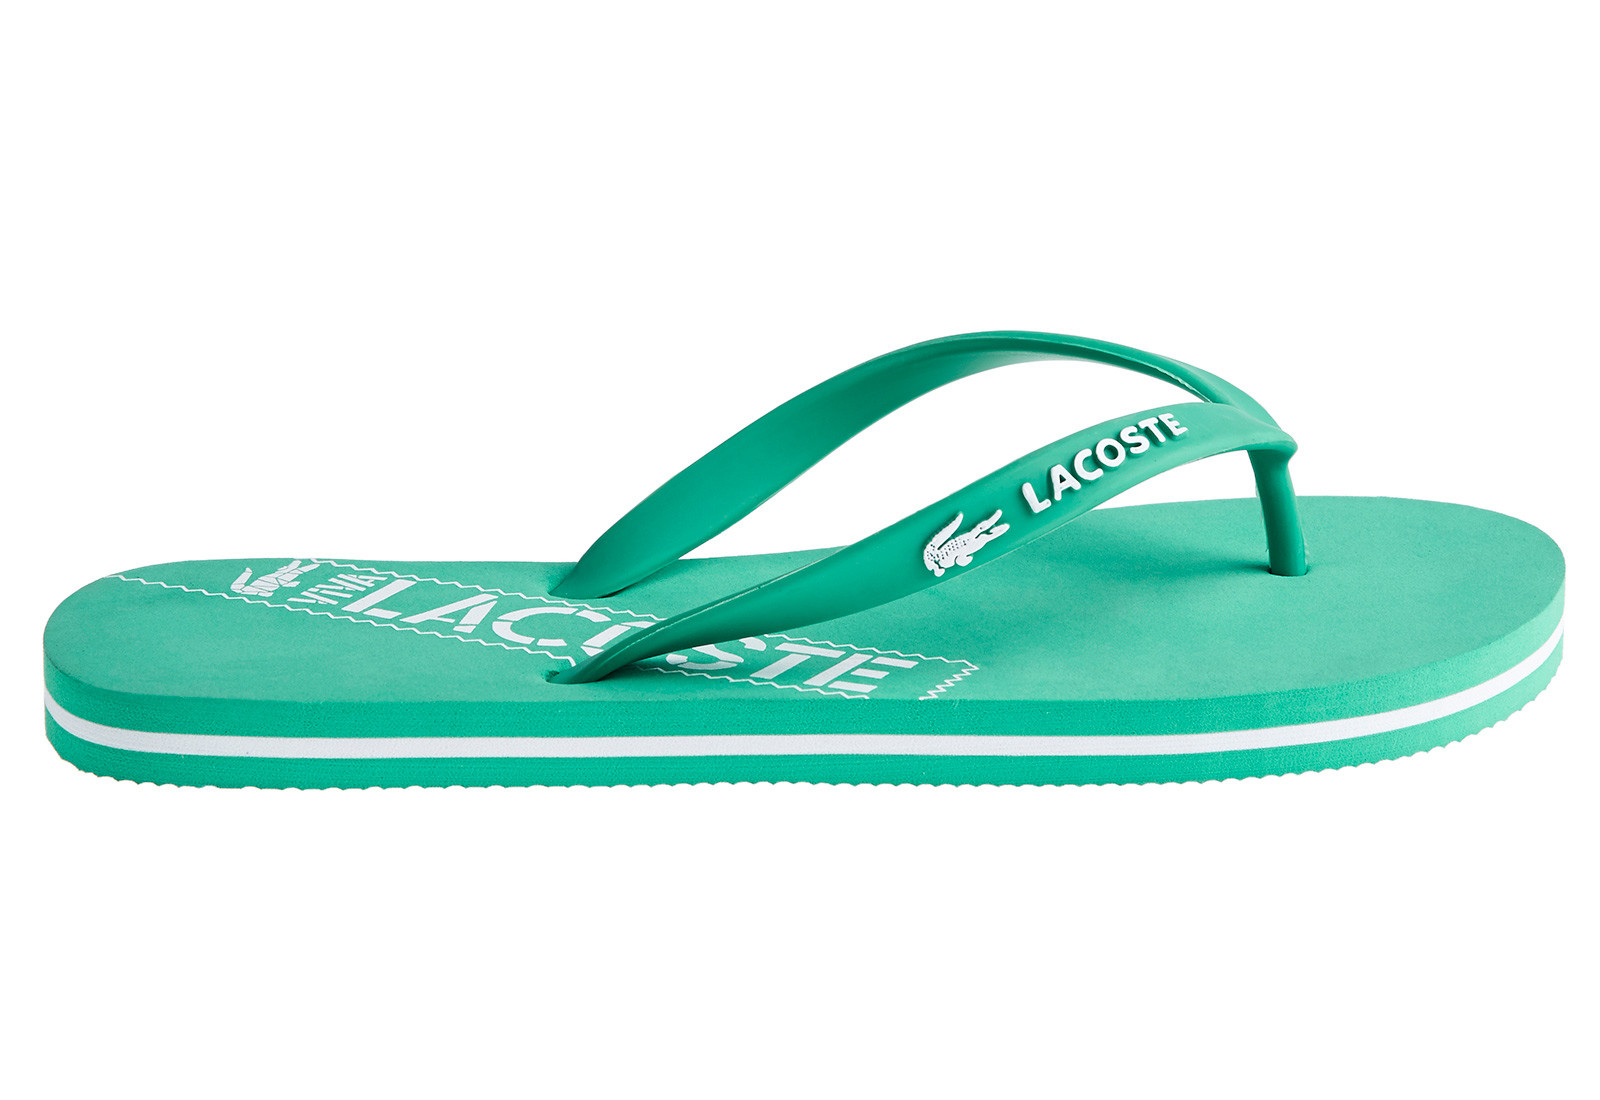 8fcb76e79 Lacoste Slippers - Ancelle Res - zx-spw1003gg2 - Online shop for ...